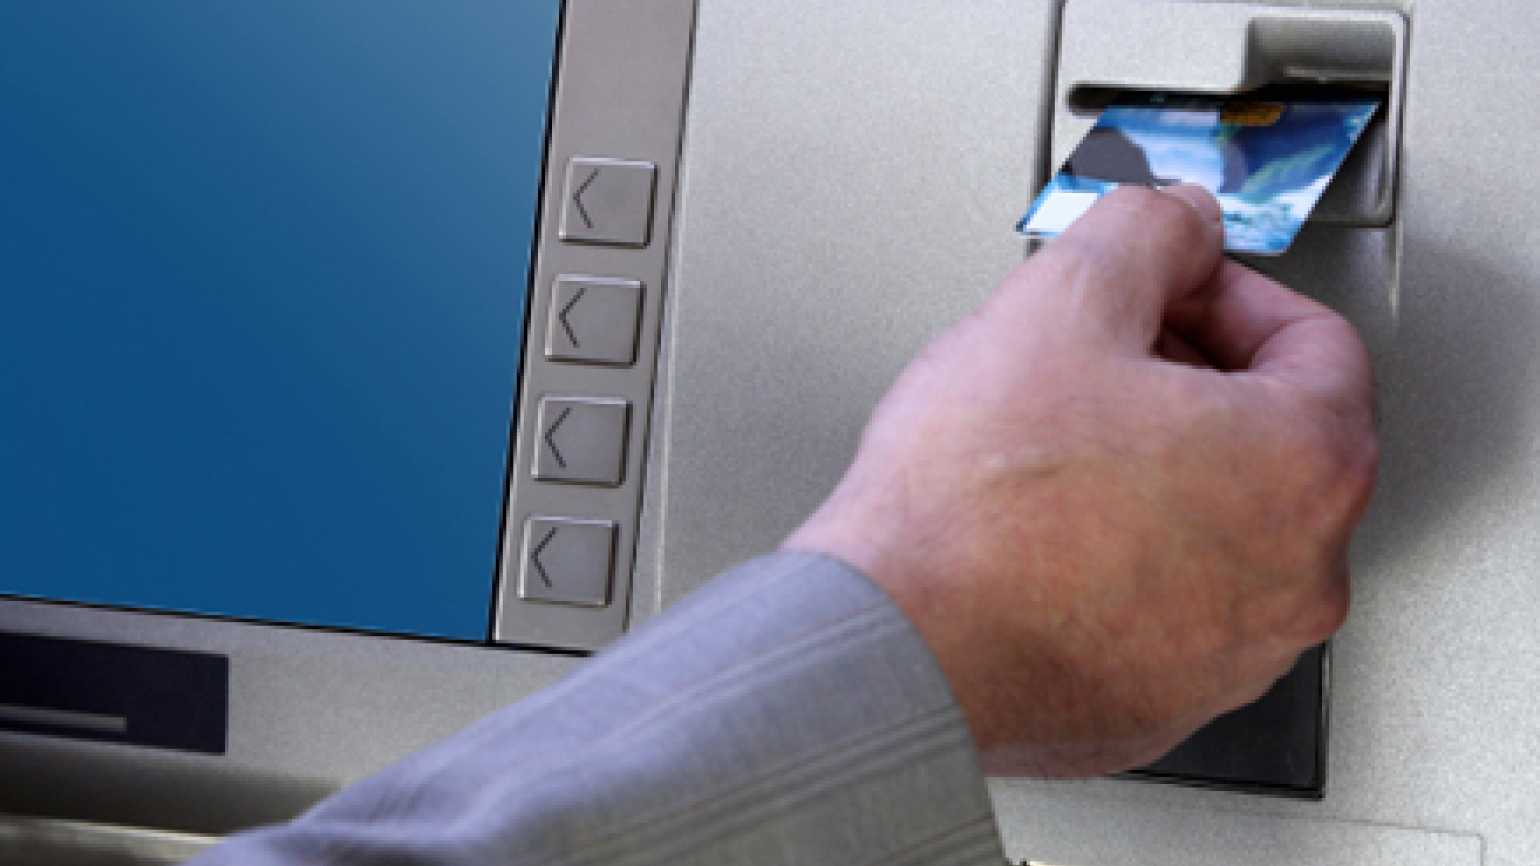 A man inserts his bank card into an ATM